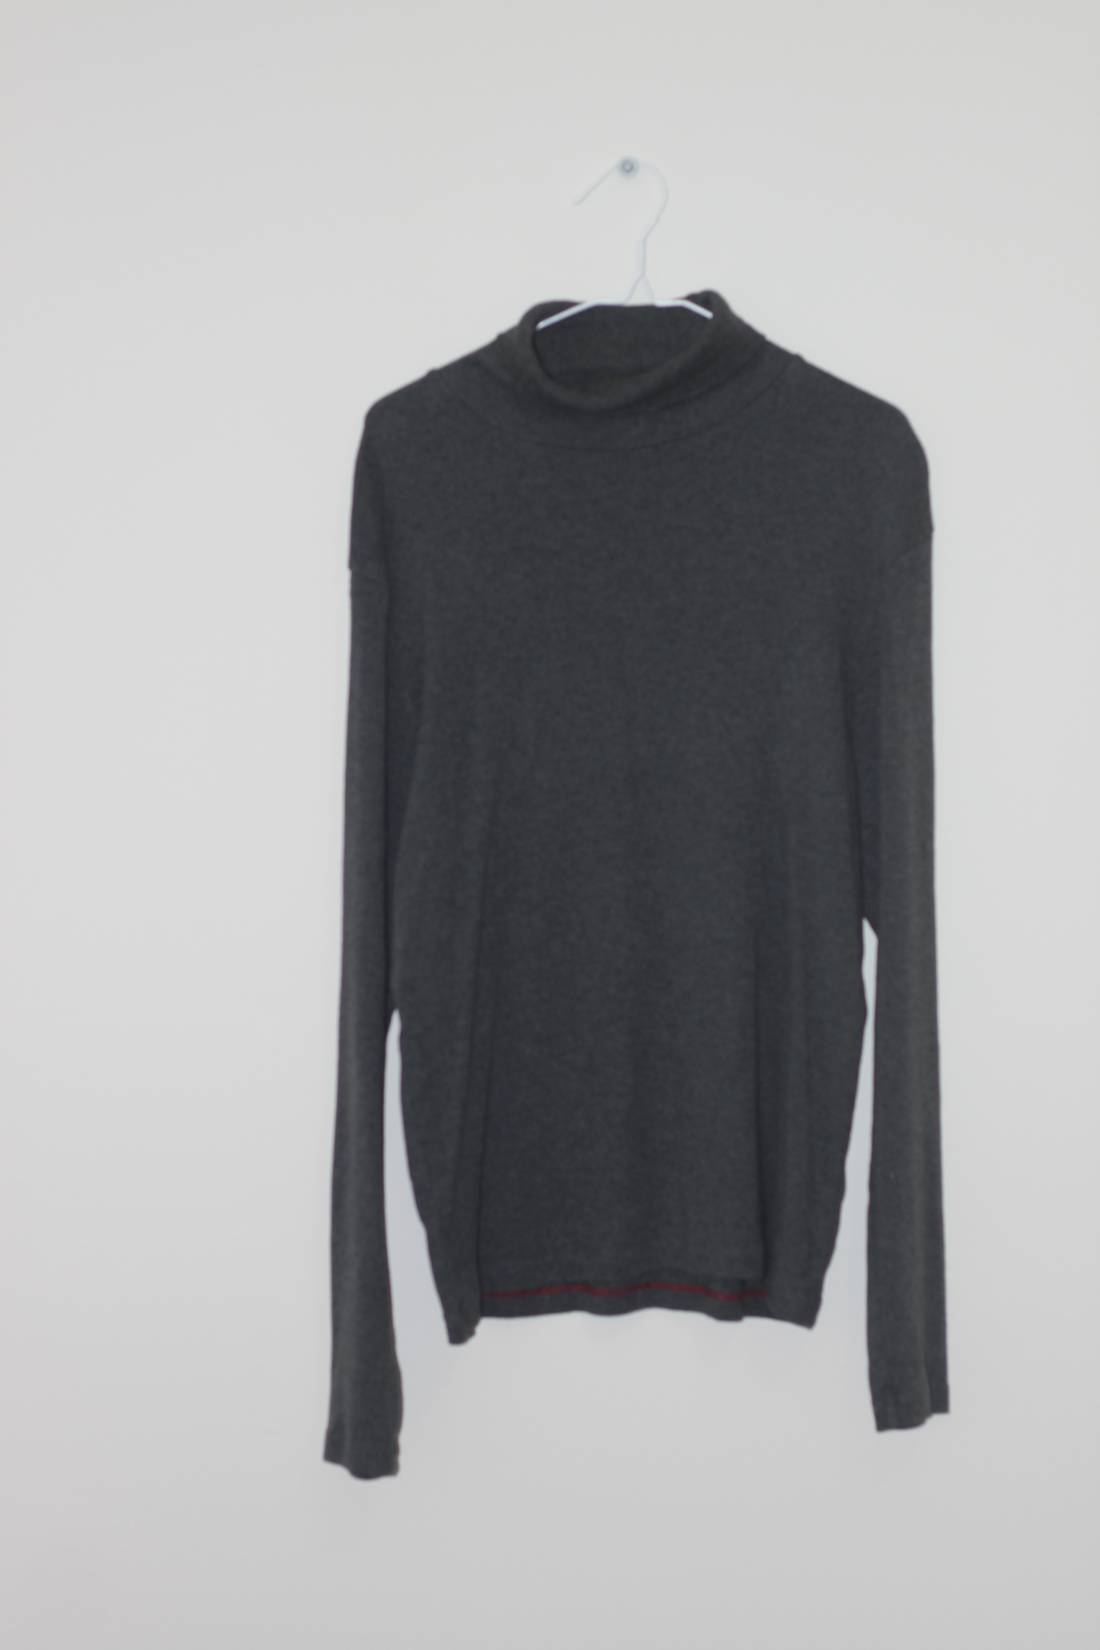 Gap Grey Turtleneck Sweater 100% Cotton Size m - Sweaters ...